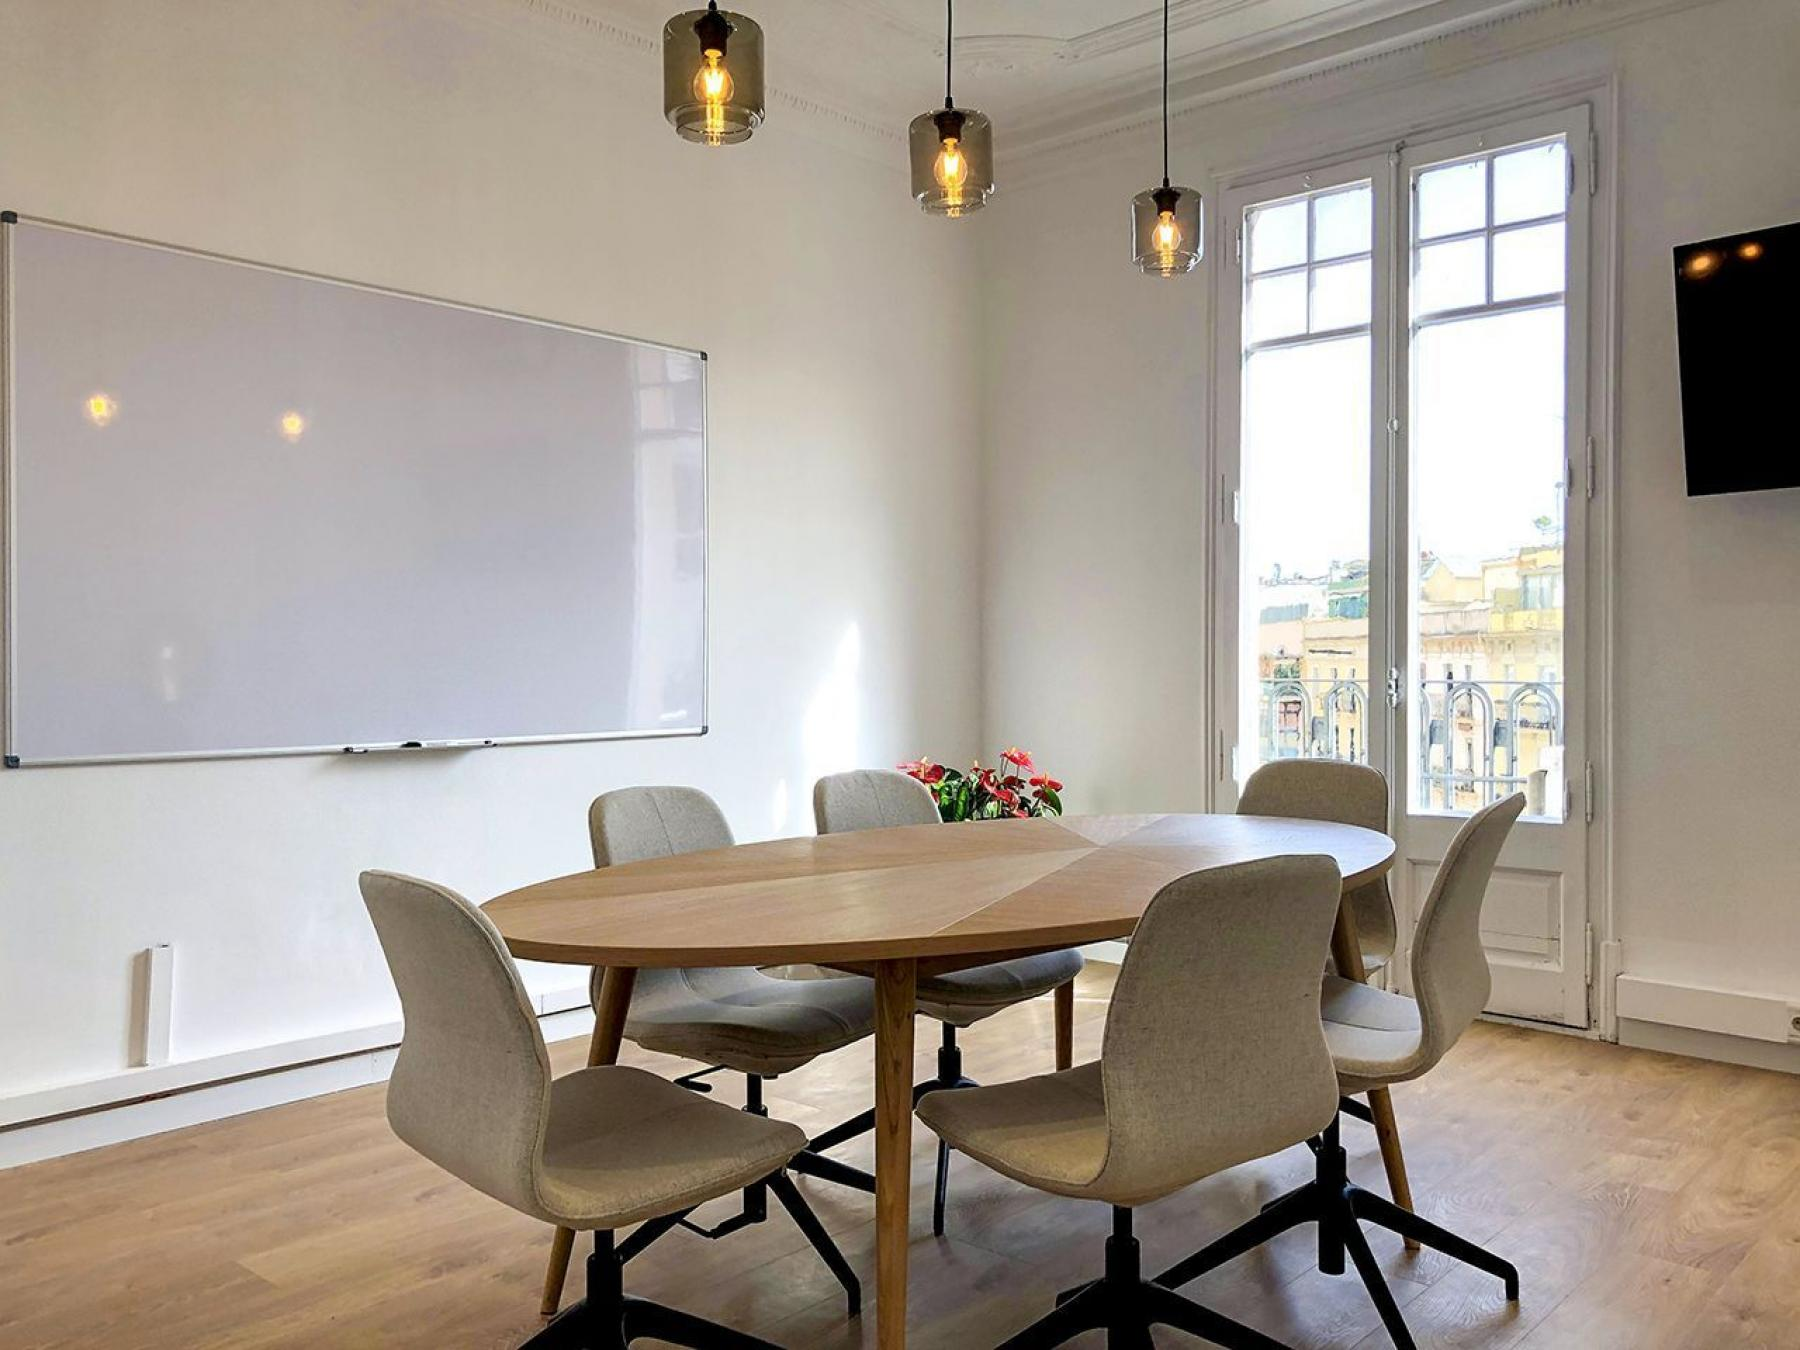 Rent office space Carrer del Consell de Cent 413, Barcelona (9)